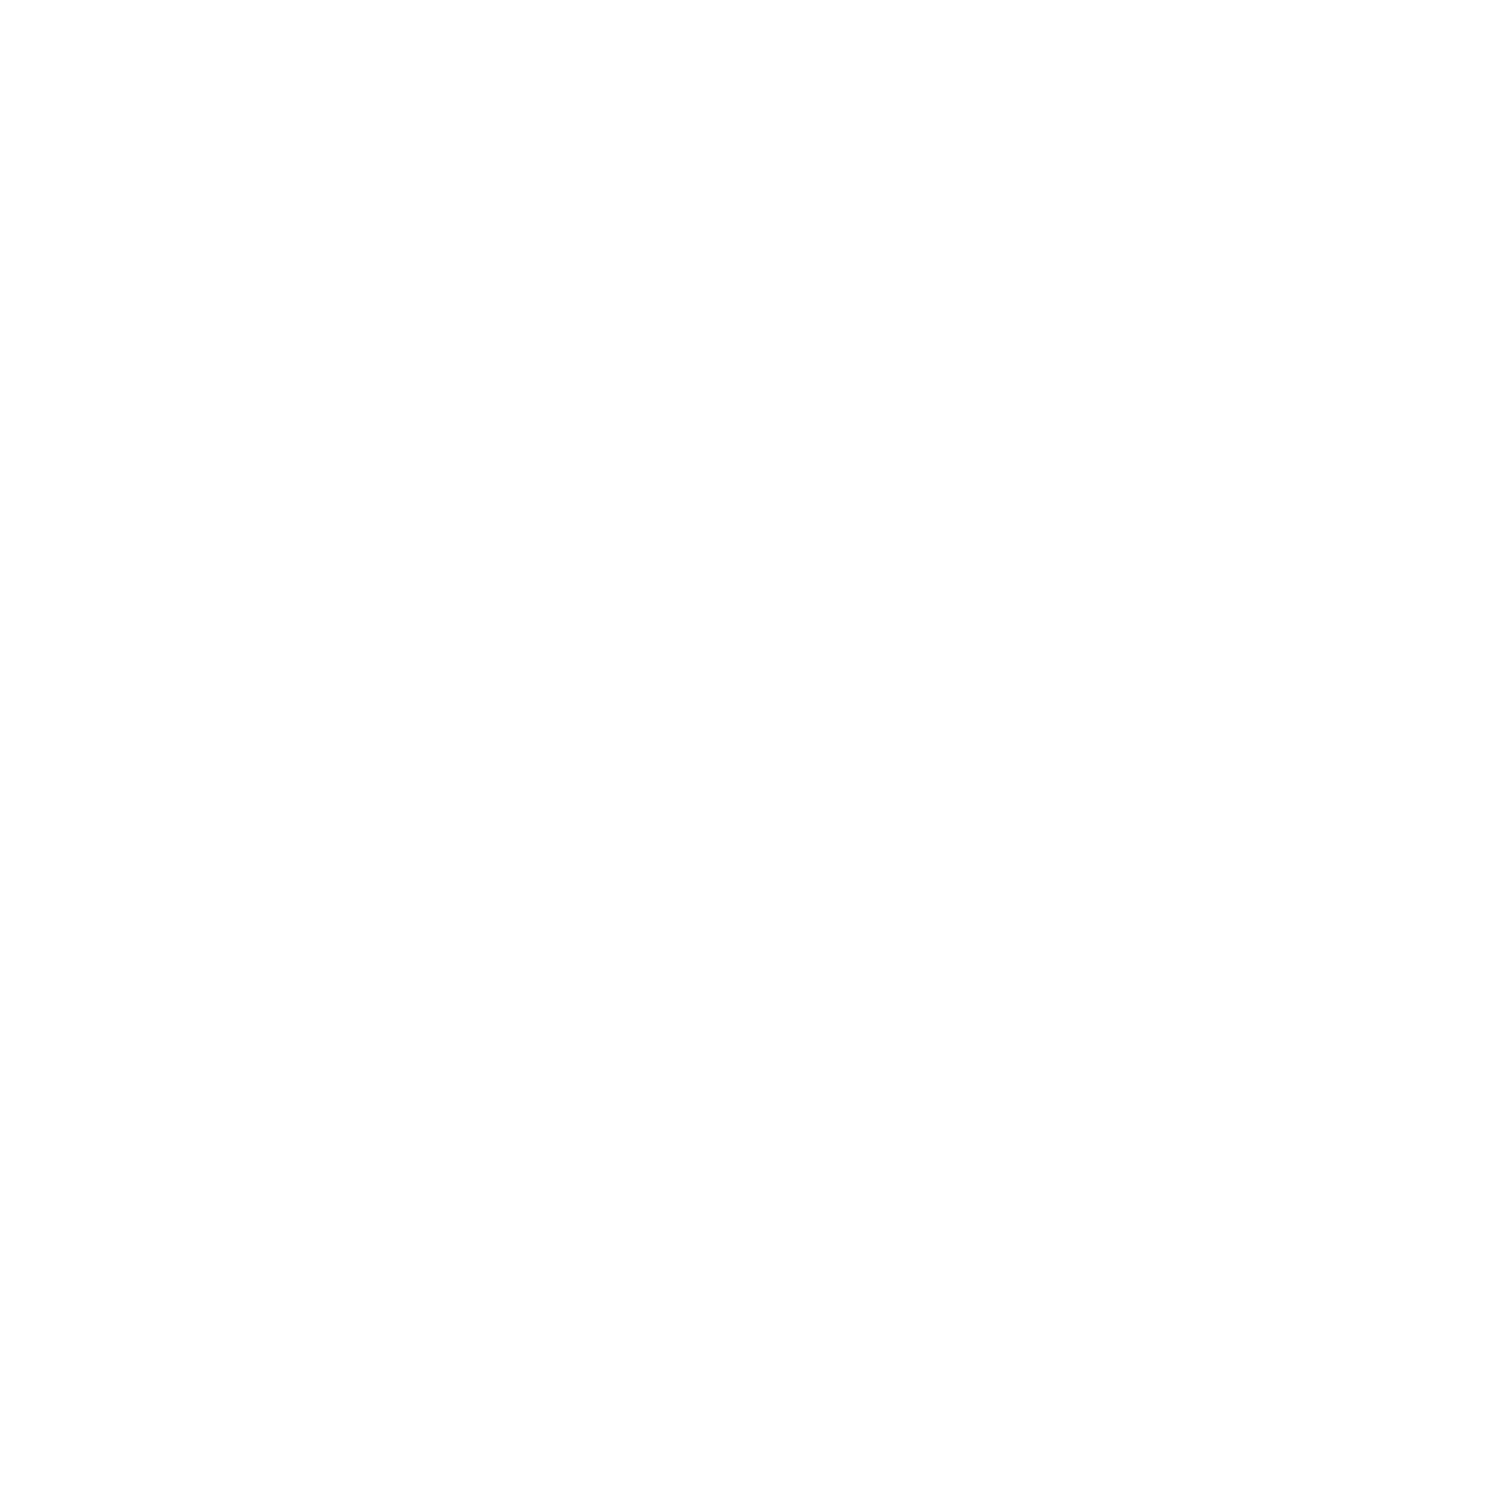 Poppy Salon & Spa